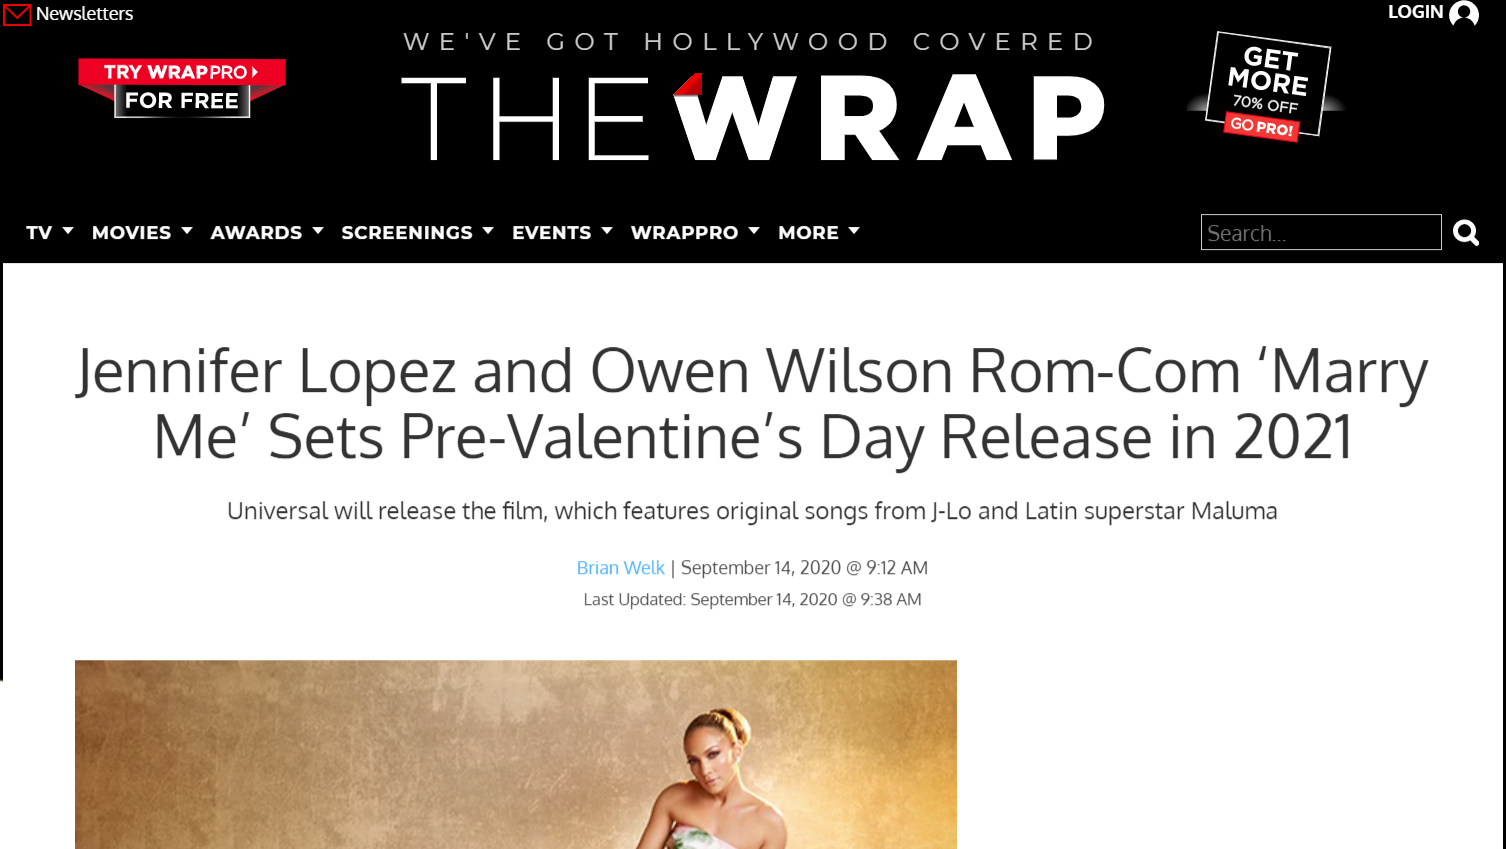 Valentine's Day story from the Wrap on the release of Marry Me